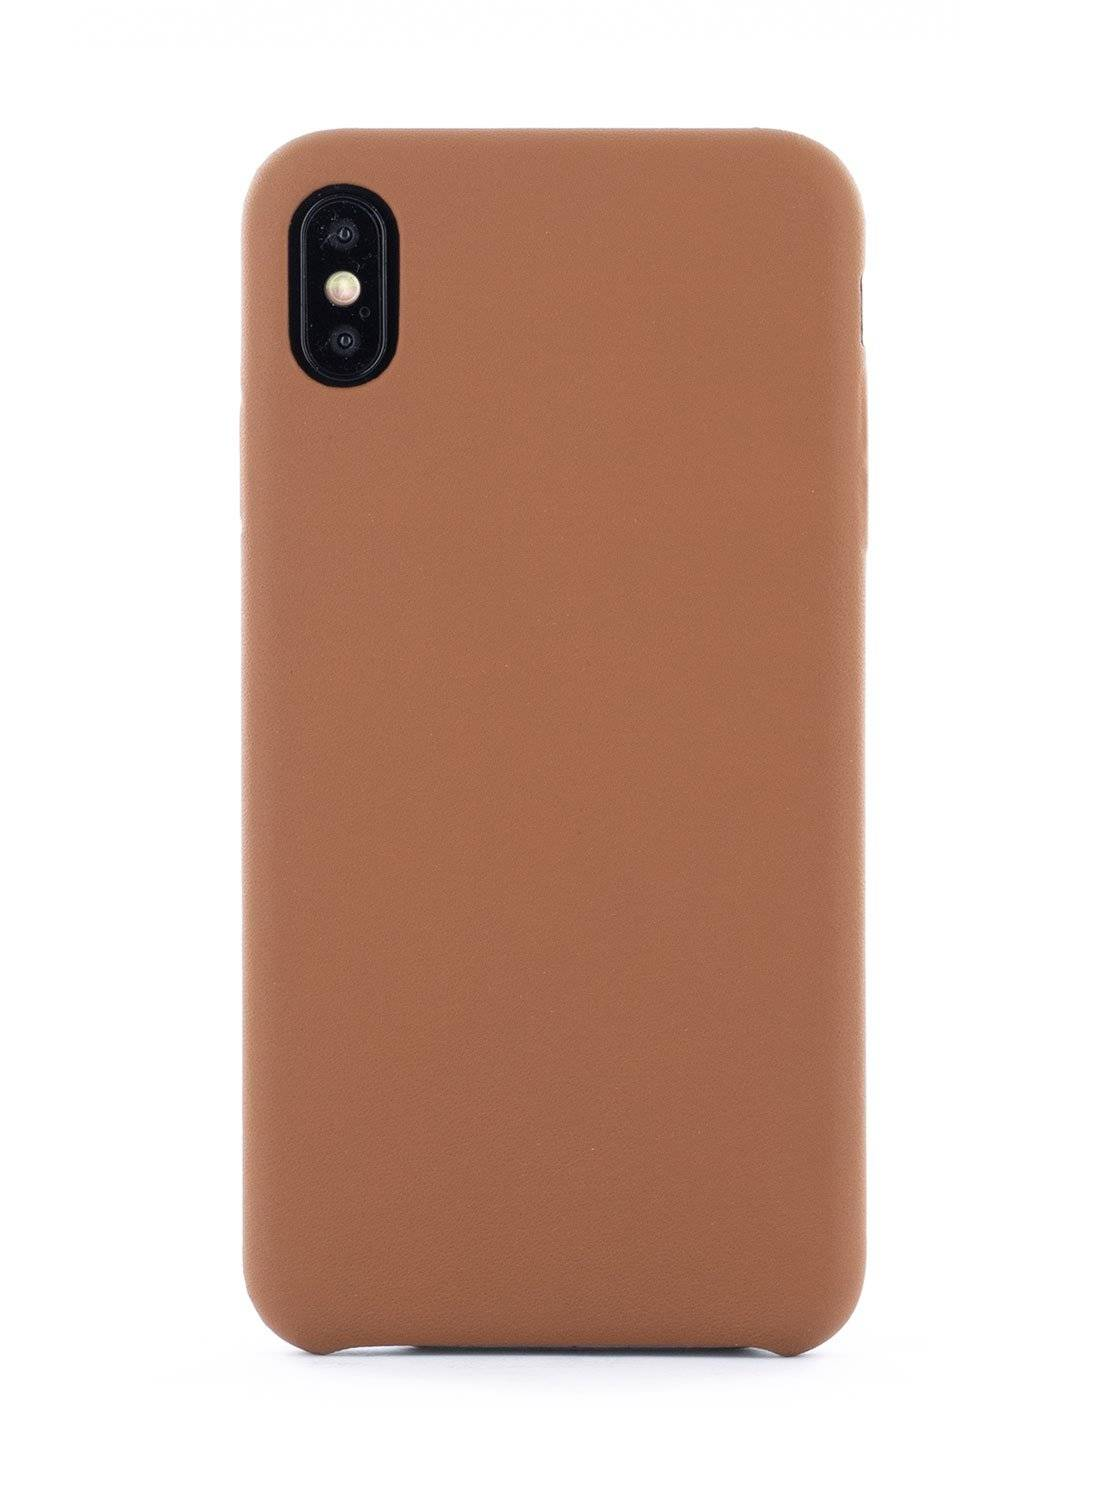 Greenwich AEON Luxury Leather Wrapped Back Shell for iPhone XS Max - Saddle (Brown)